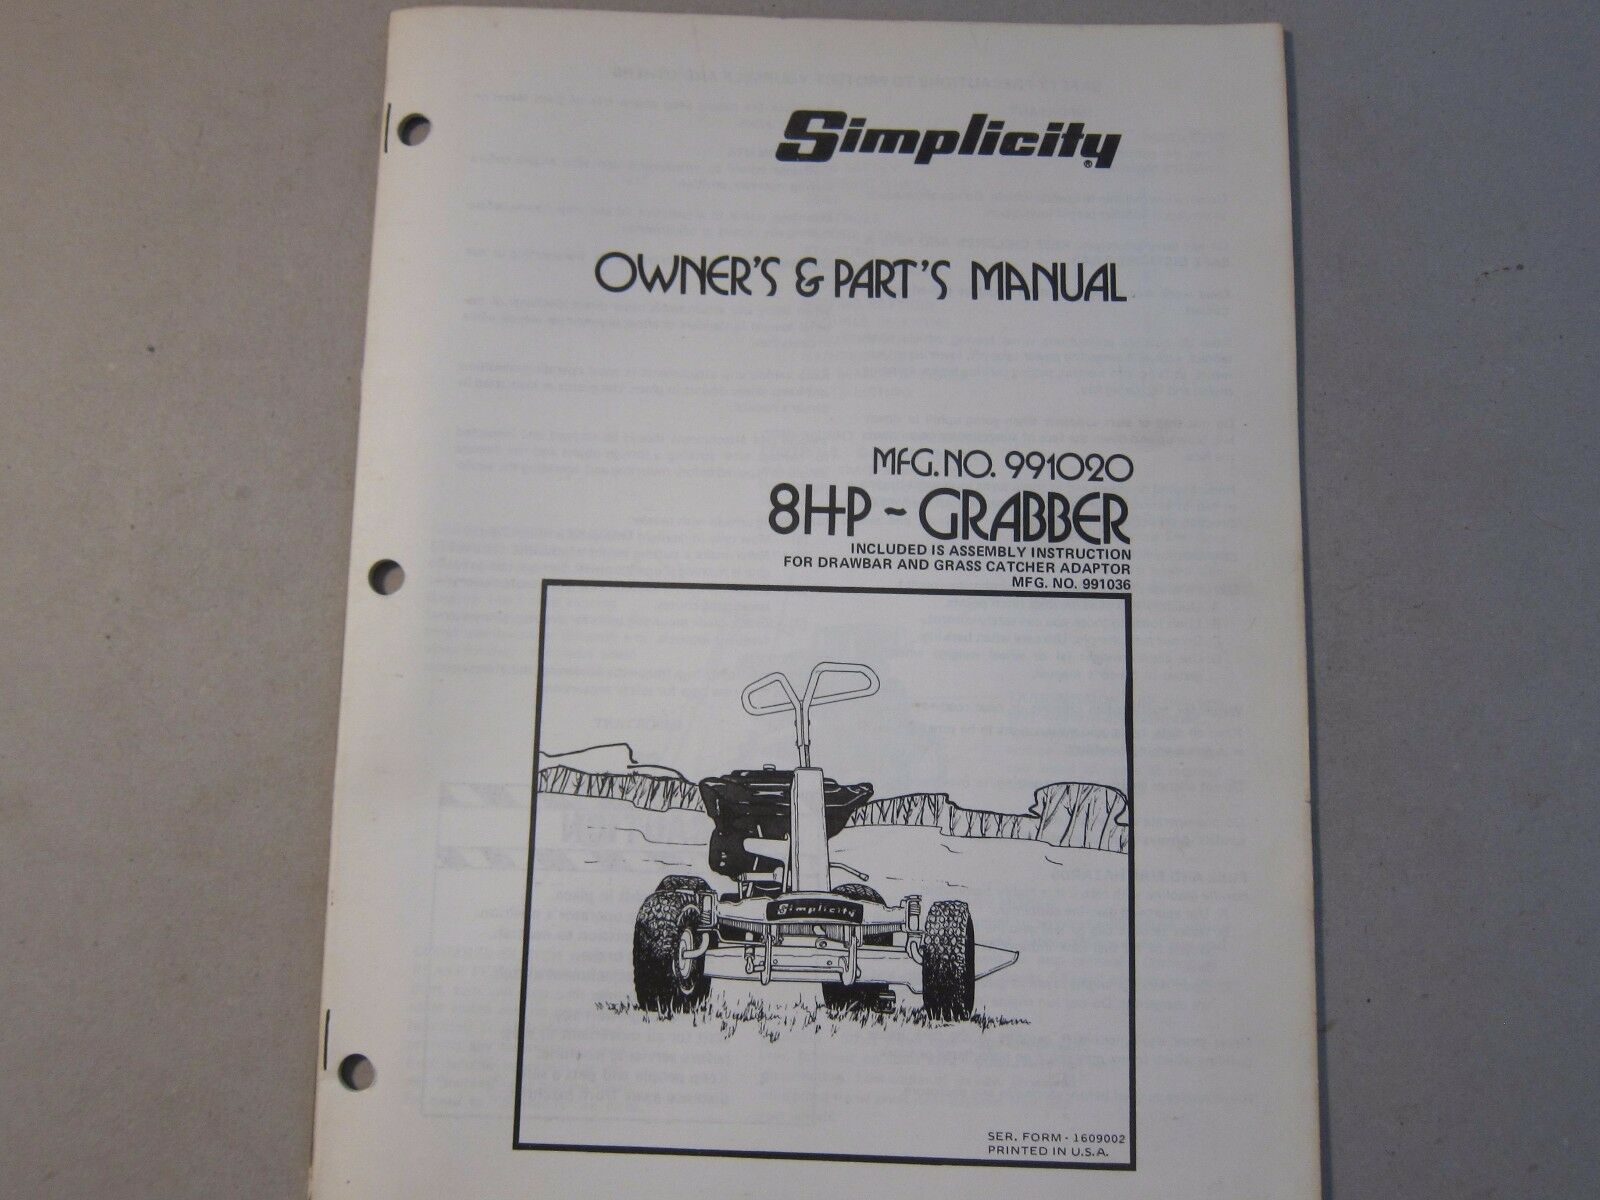 Oem simplicity grabber 8 hp 991020 owners manual parts list more oem simplicity grabber 8 hp 991020 owners manual parts list more listed ebay publicscrutiny Gallery